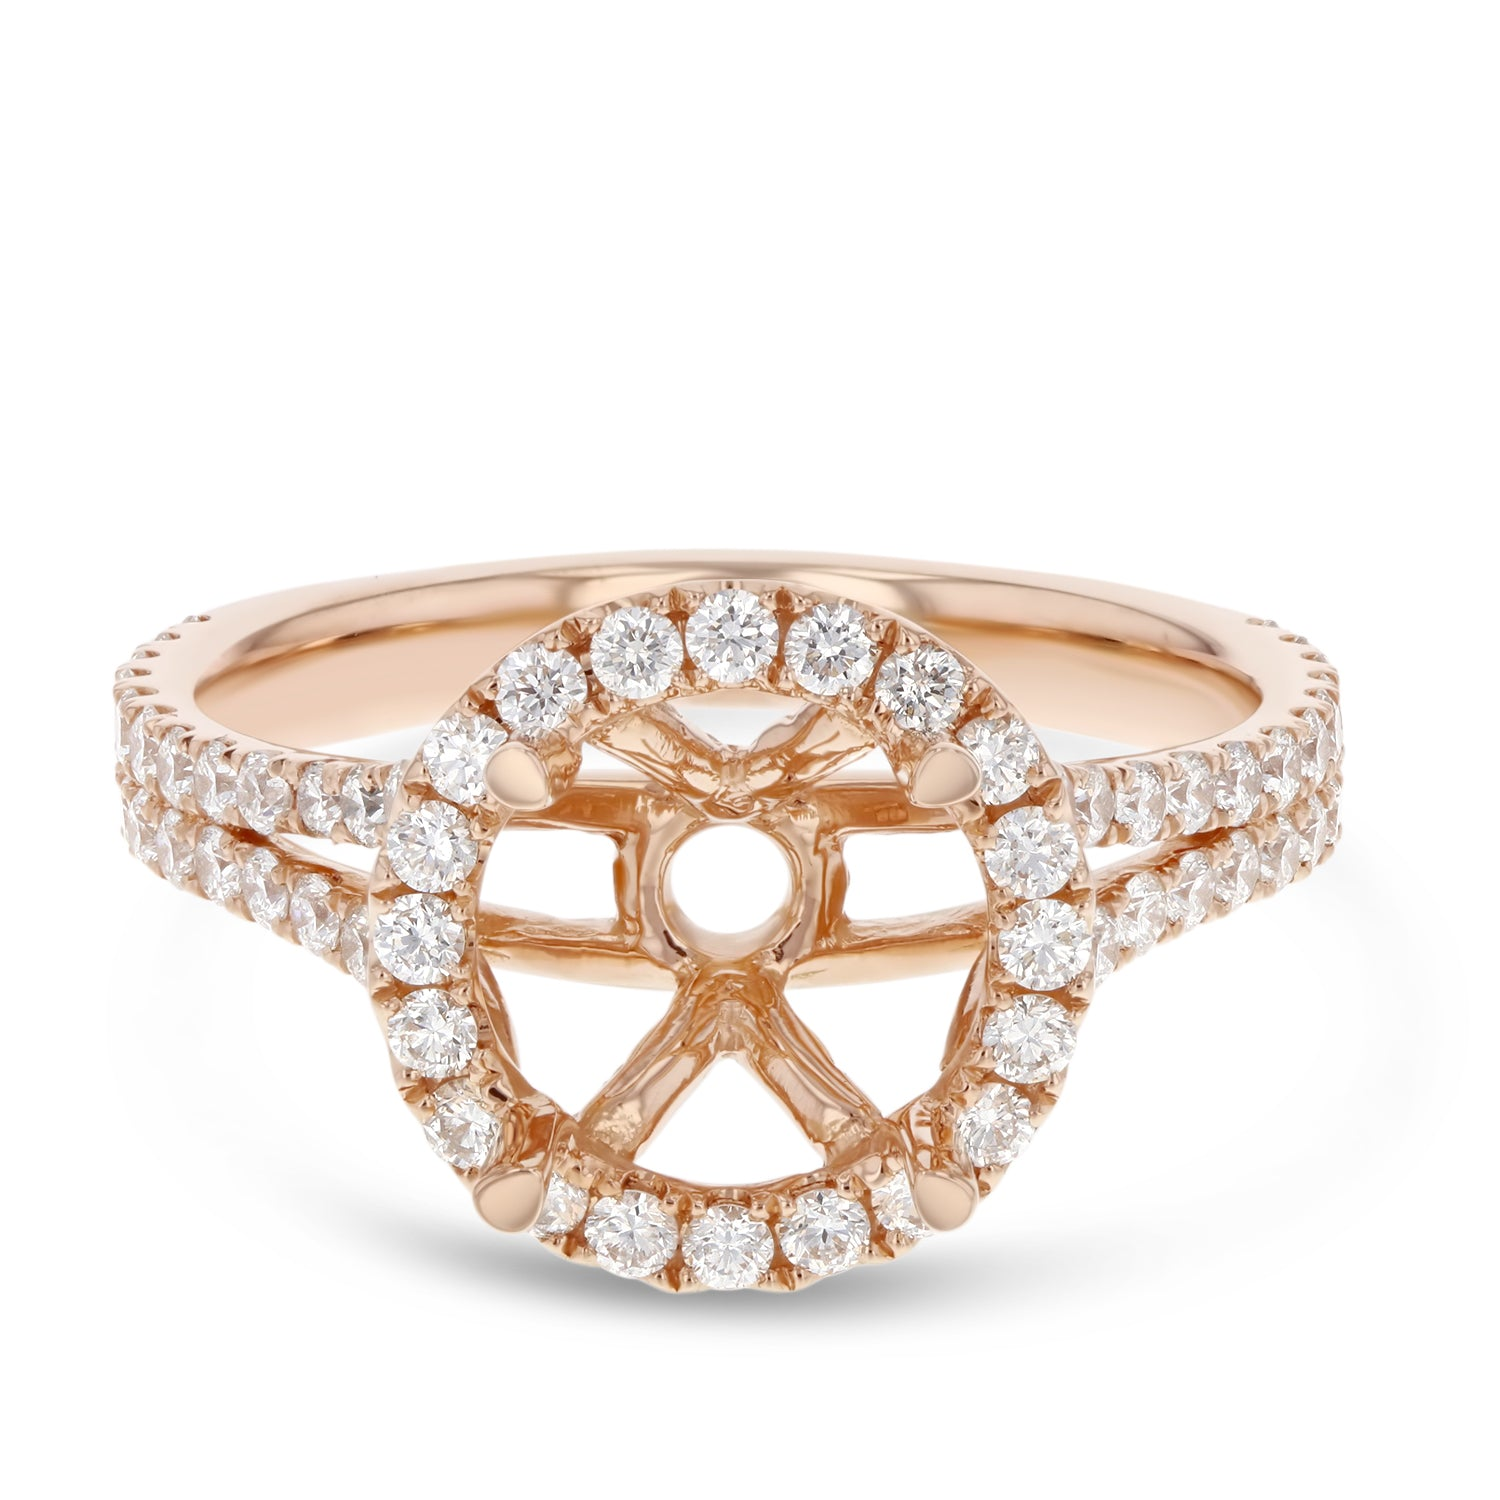 18K Rose Gold Semi-mount Ring, 0.91 Carats